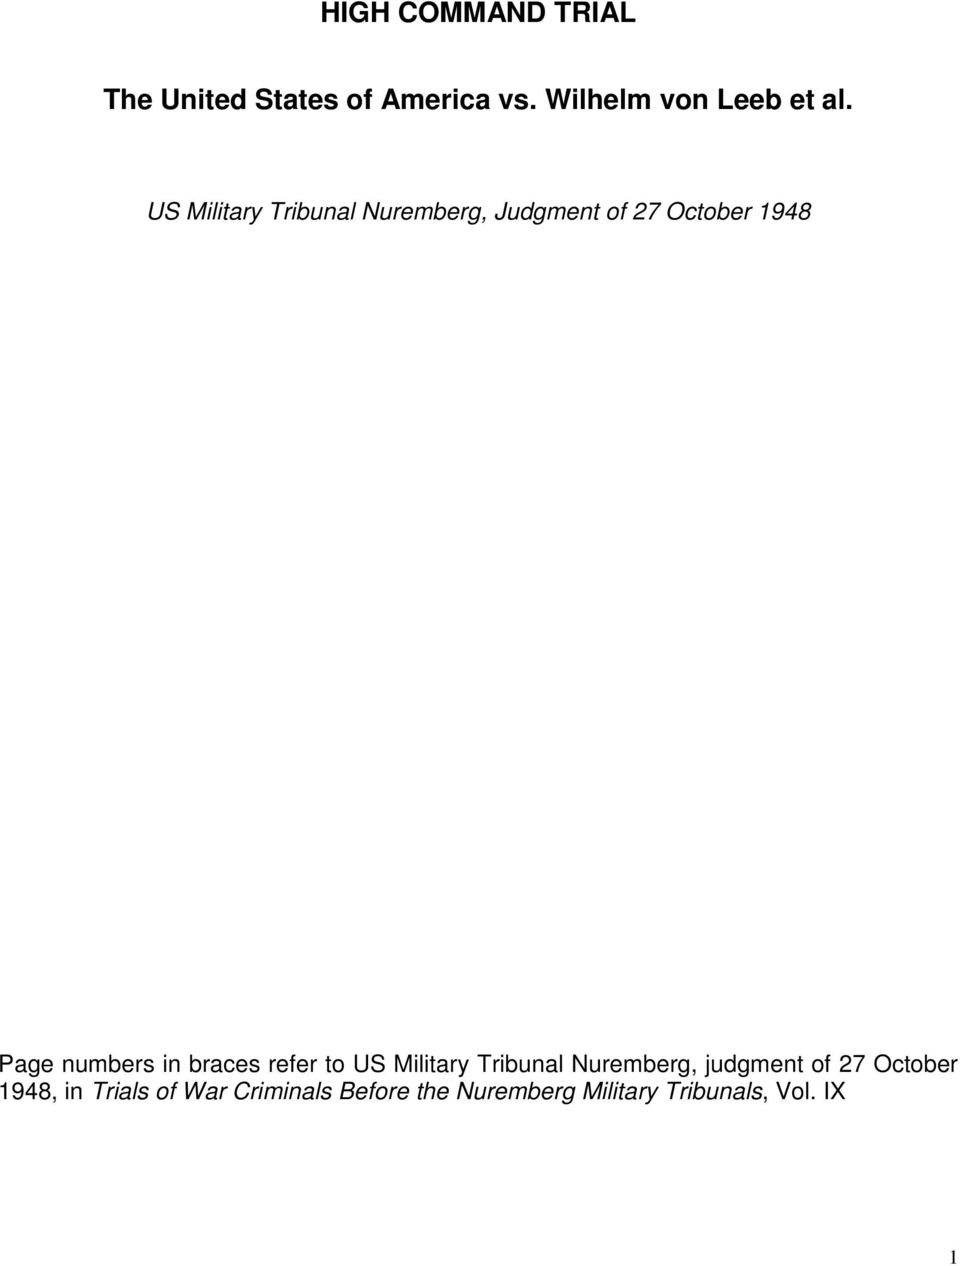 braces refer to US Military Tribunal Nuremberg, judgment of 27 October 1948,